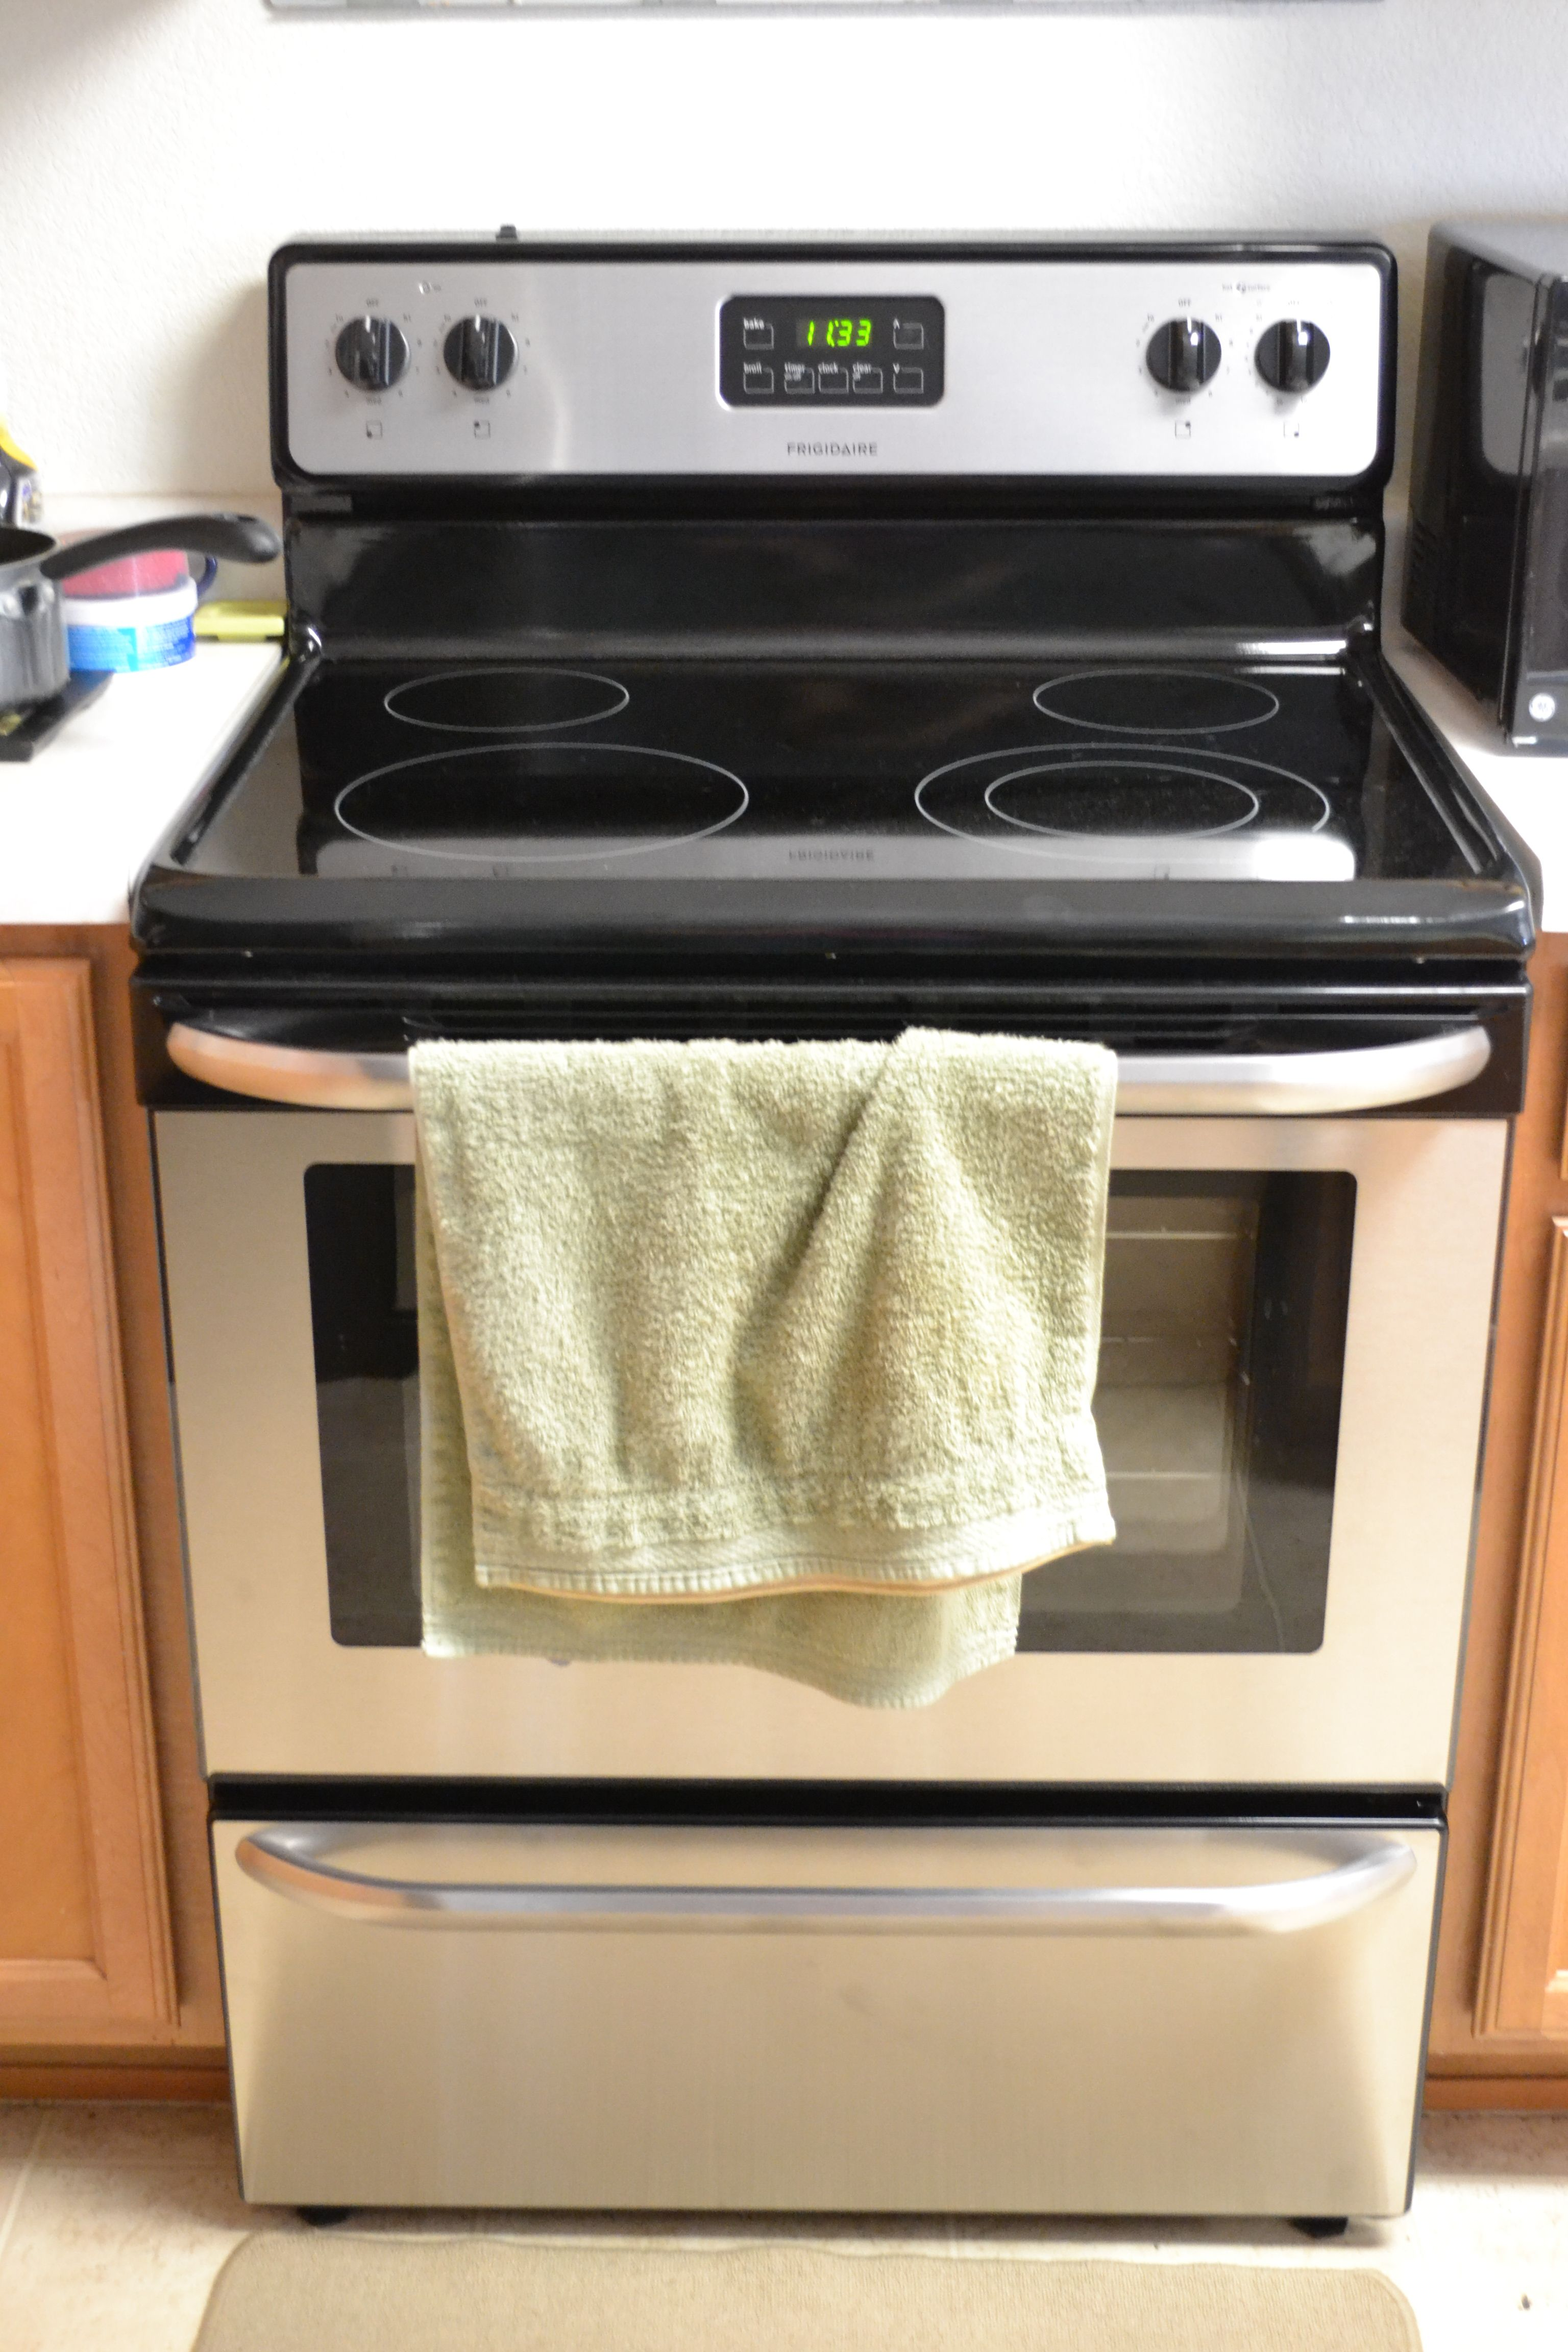 Loving the new stainless steel #Frigidaire stove!